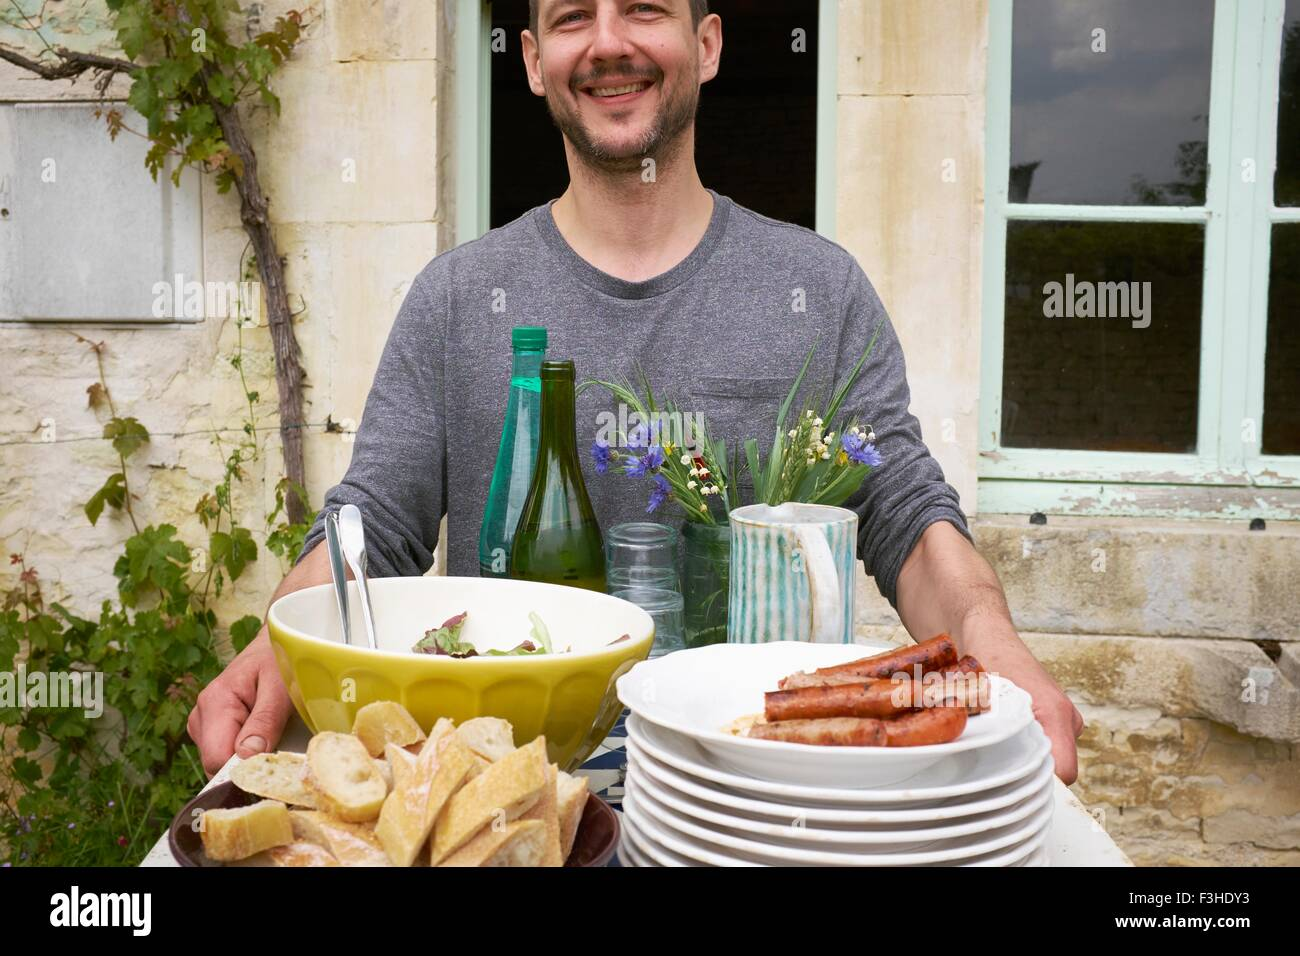 Man carrying tray of food outside house - Stock Image